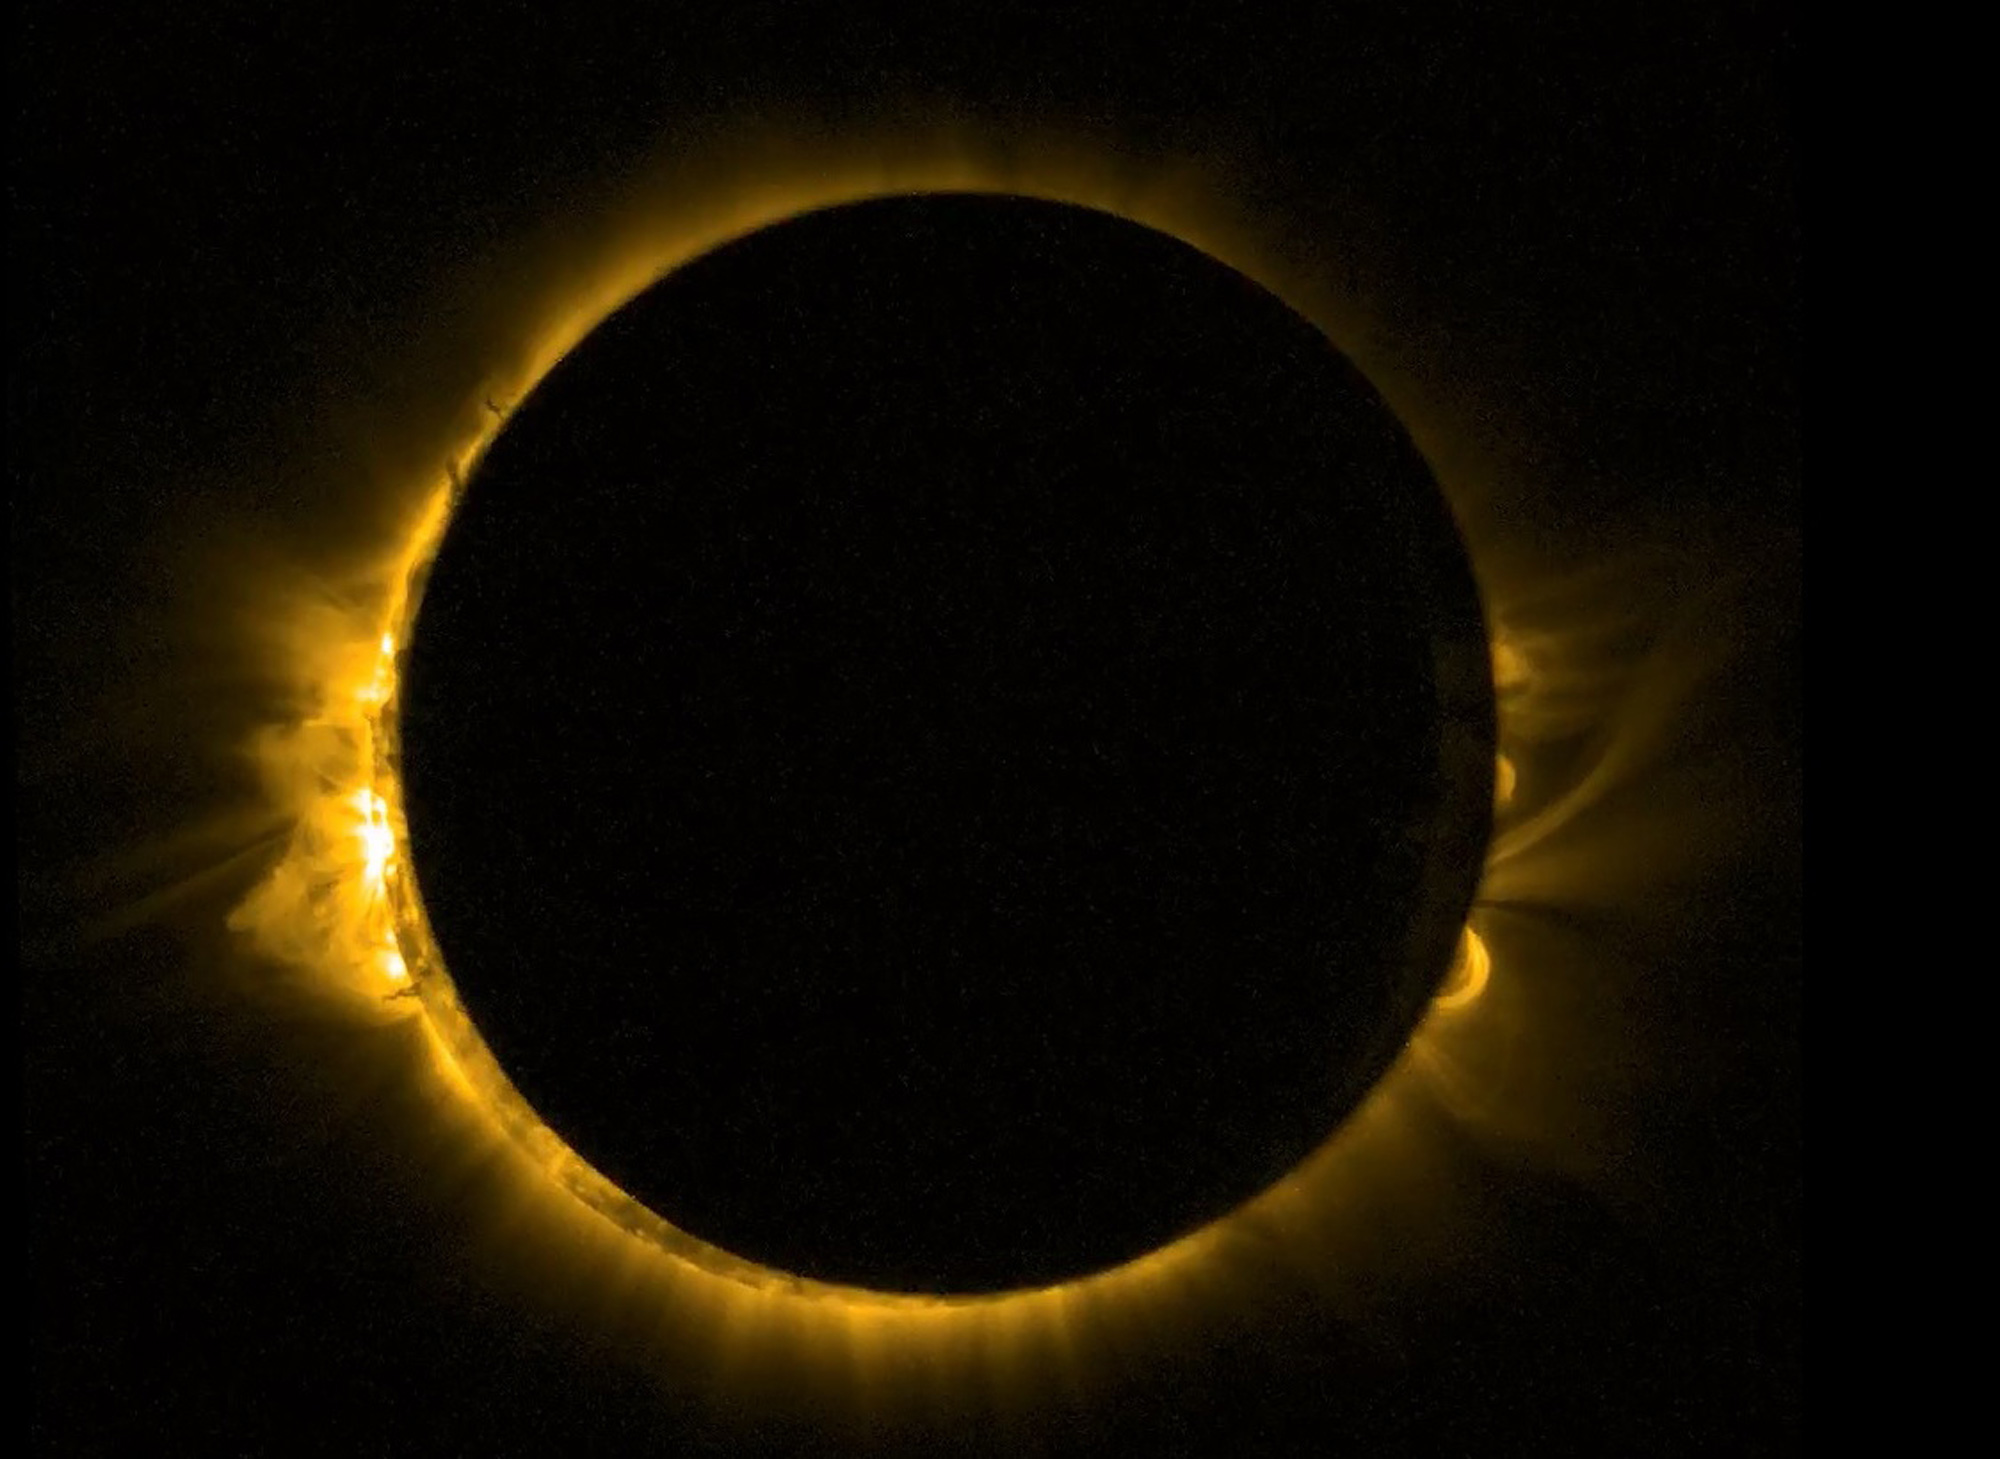 Proba-2_view_of_Europe_s_solar_eclipse_2000.jpg